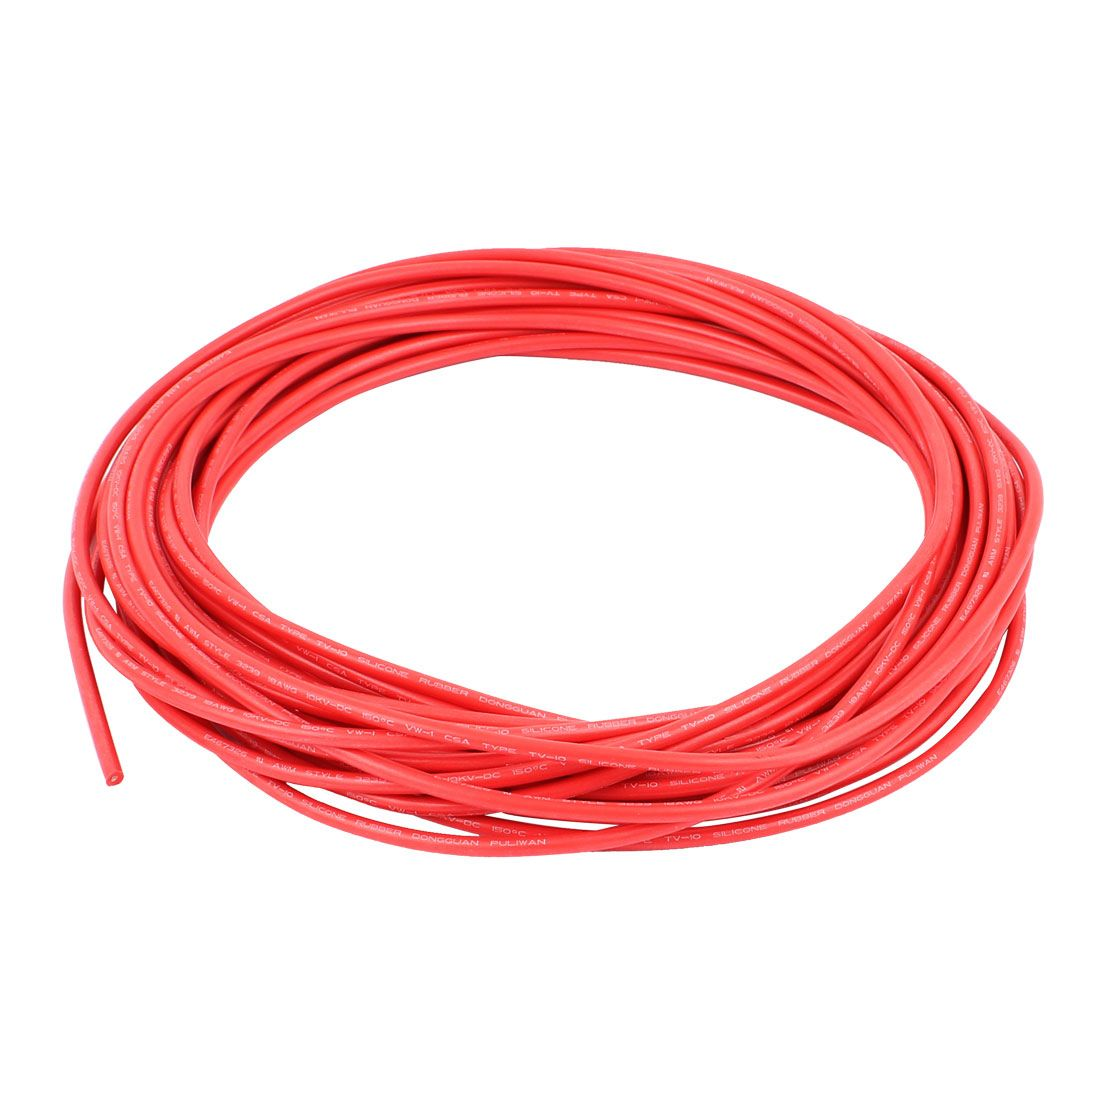 UXCELL 10M 32.8Ft 18Awg 10Kv Electric Copper Core Flexible Silicone Wire Cable Red